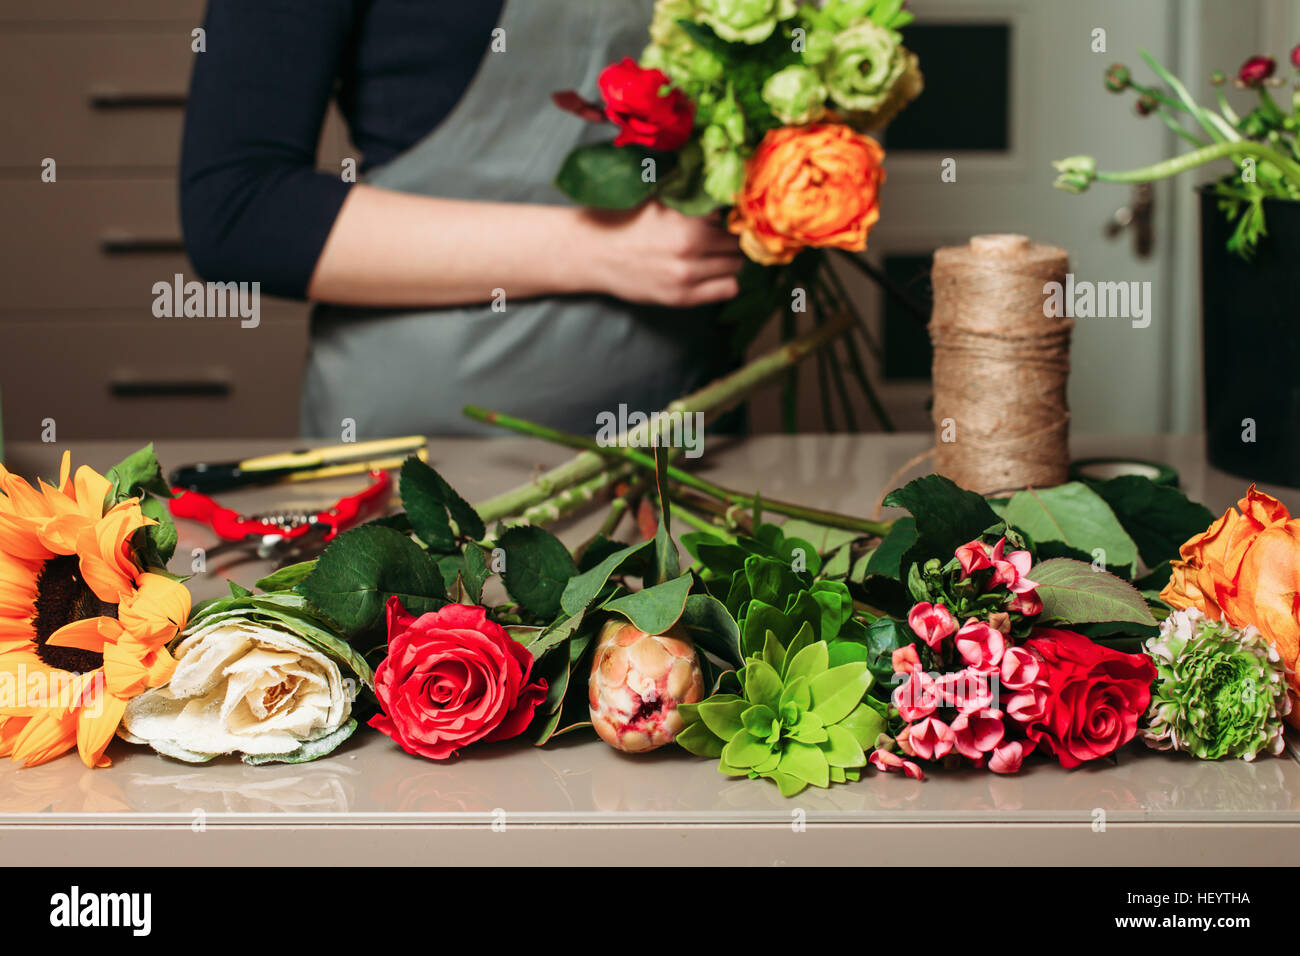 Florist with bouquet of roses at work. - Stock Image